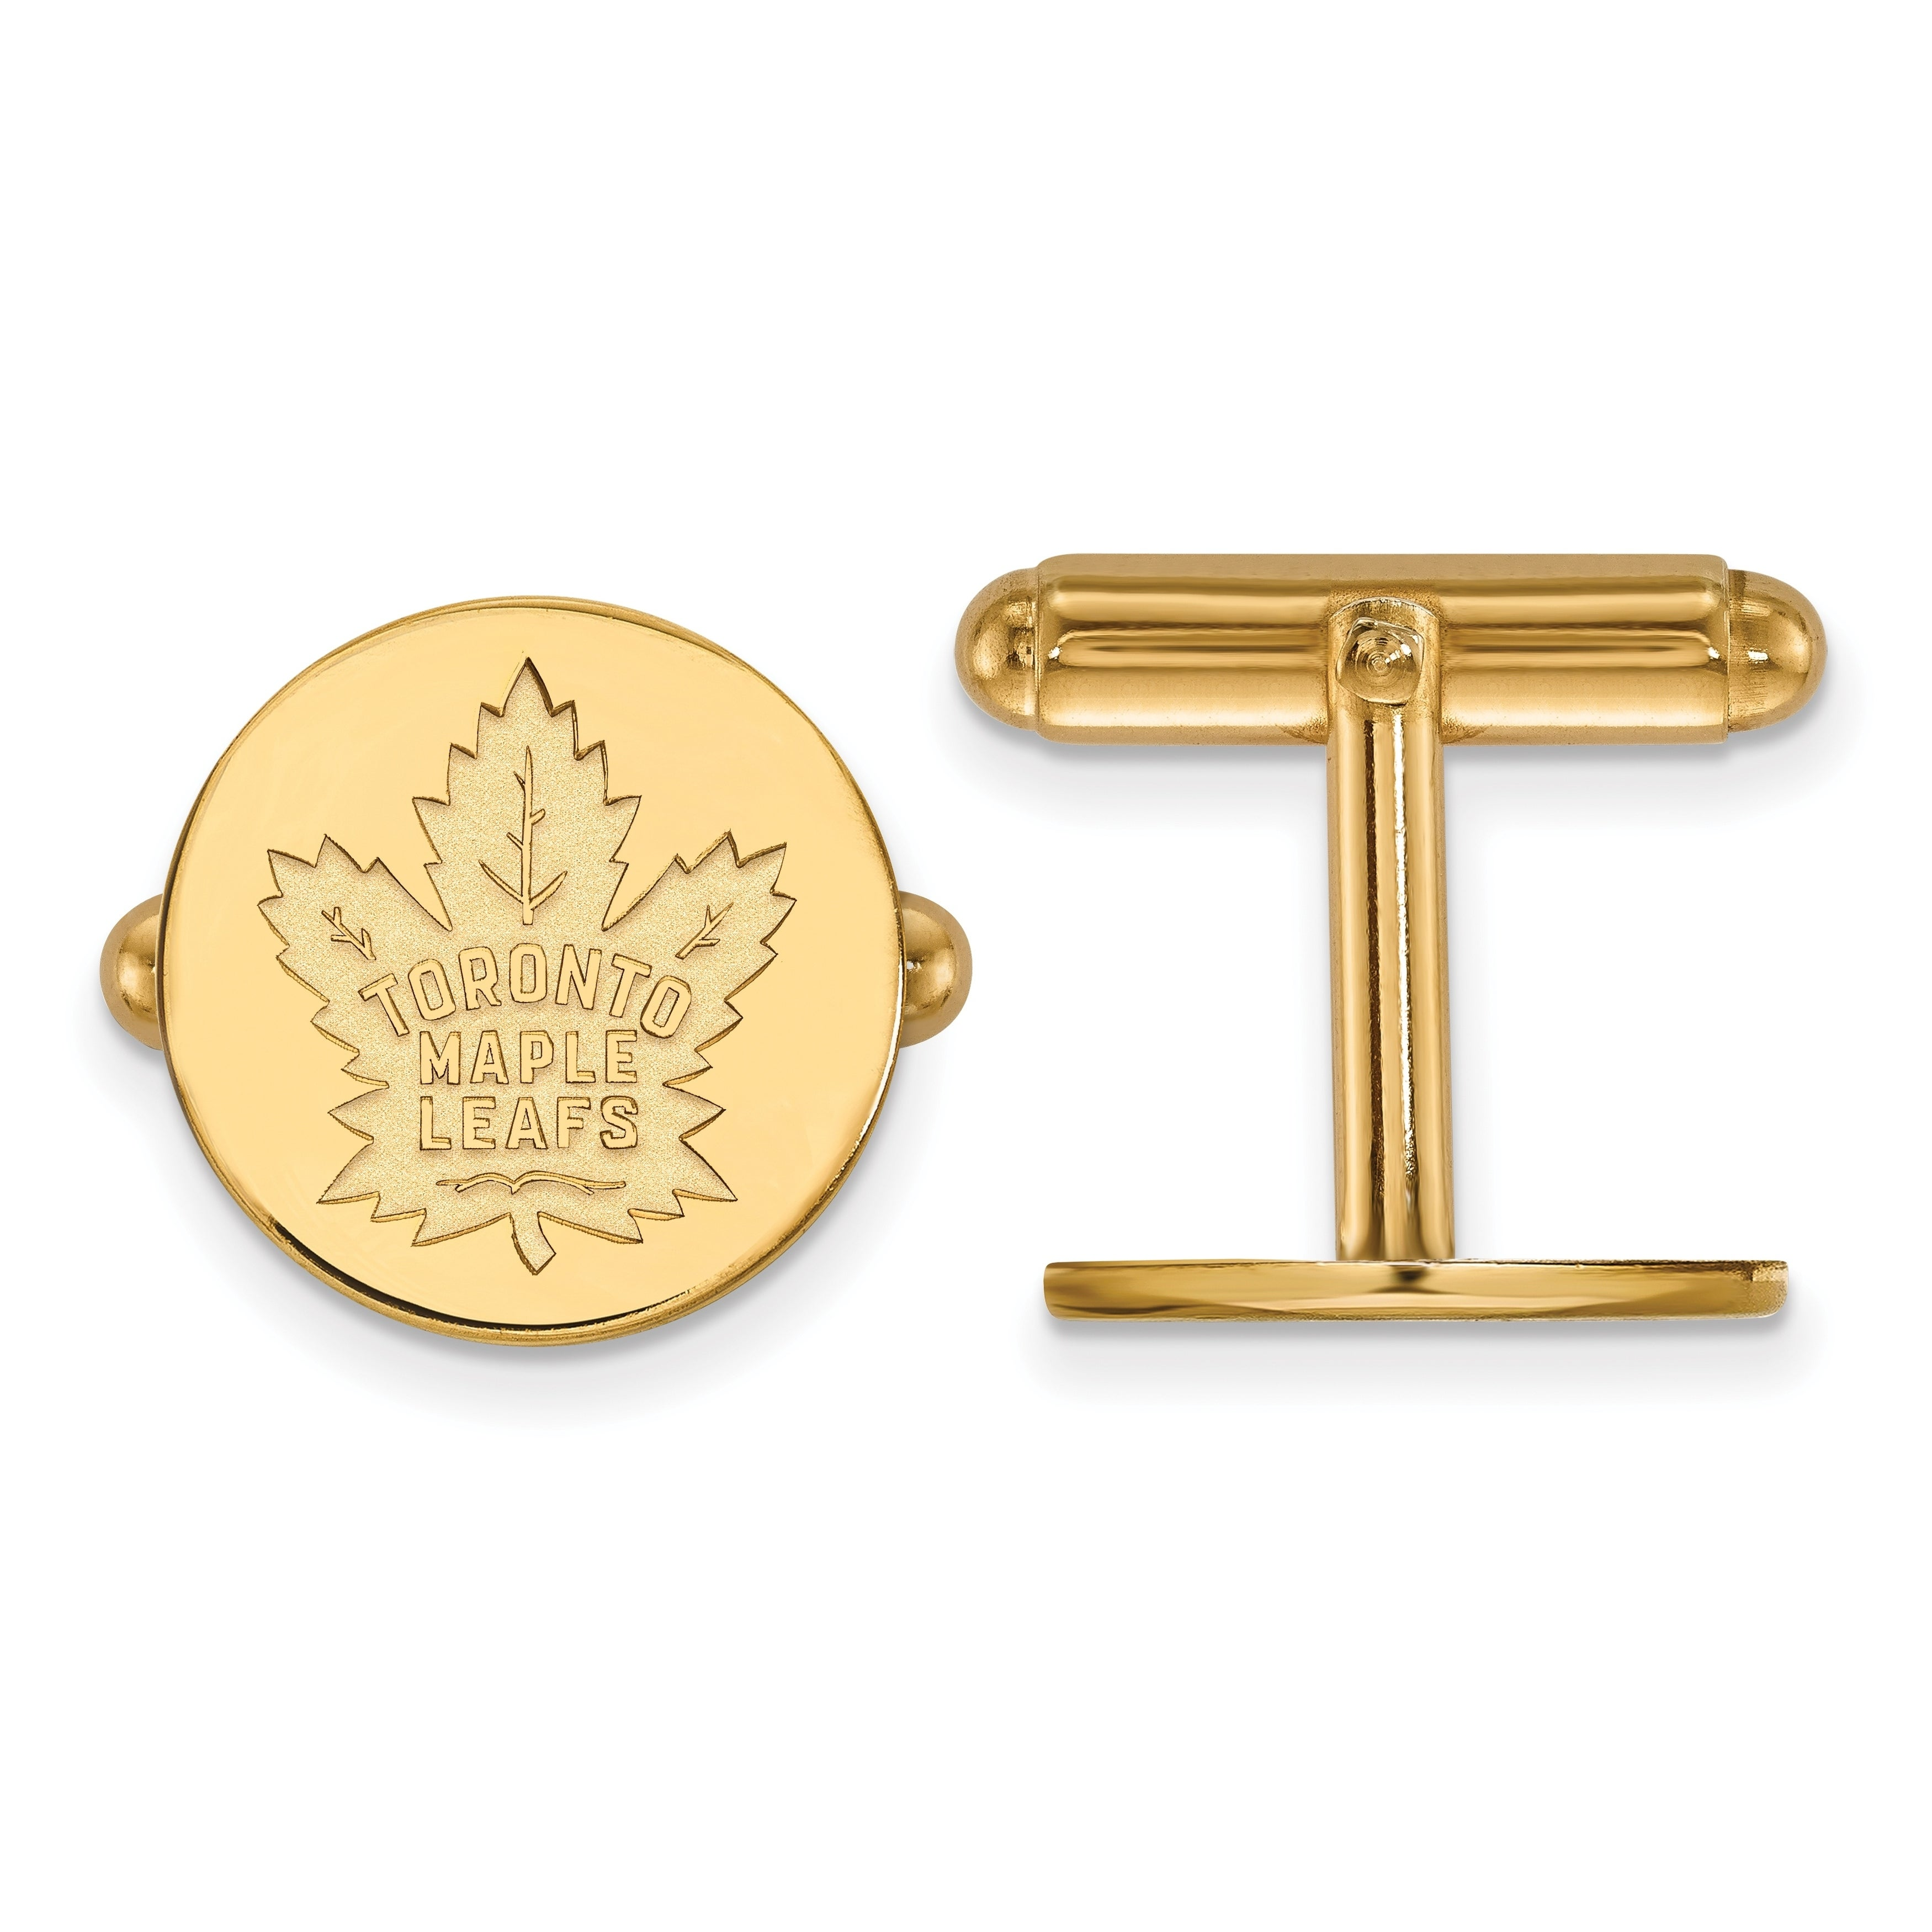 Shop Sterling Silver With Gold Plating Nhl Logoart Toronto Maple Leafs Cuff Links By Versil On Sale Overstock 15292731